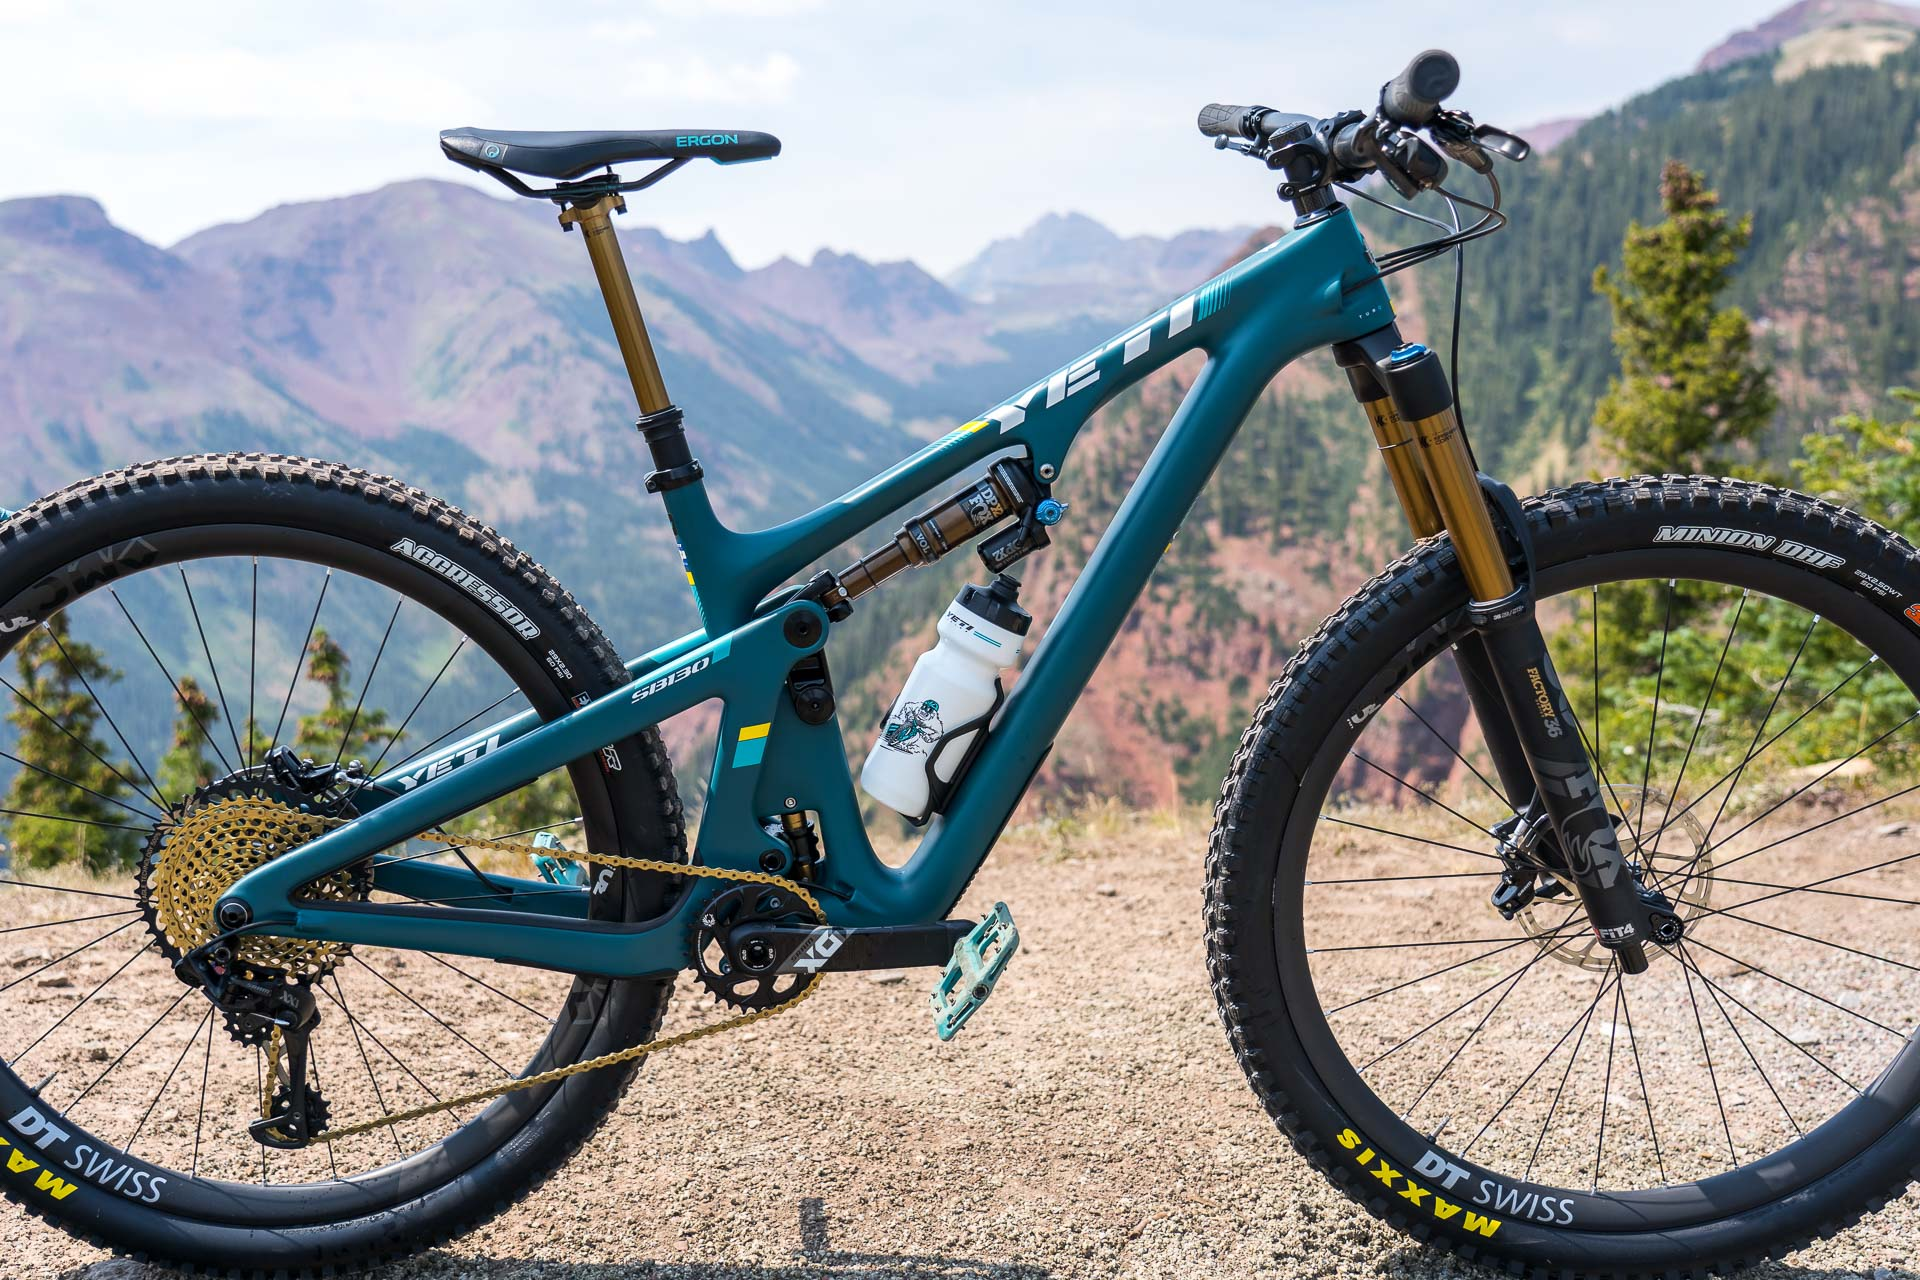 First Ride: Yeti SB130 Mid-Travel Mountain Bike | Bike Magazine